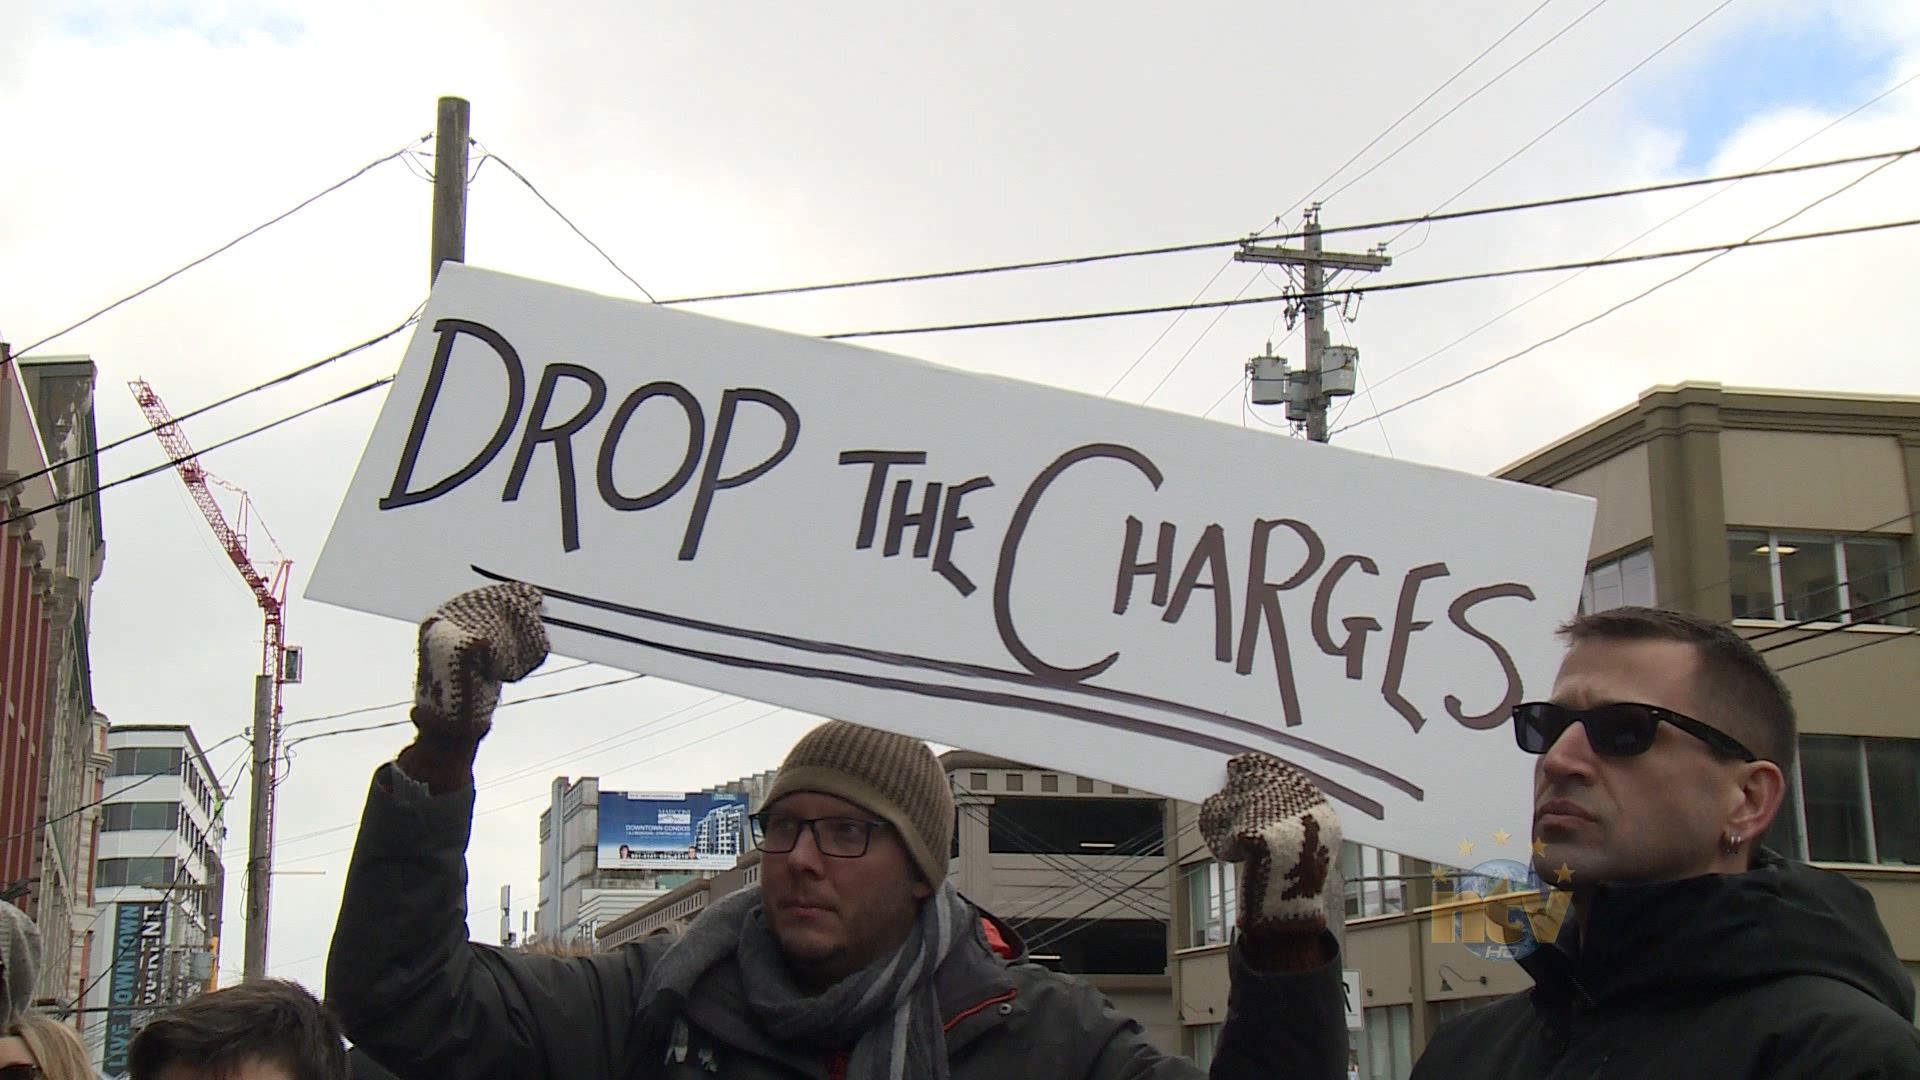 Protesters call for charges against Independent journalist to be dropped | ntv.ca